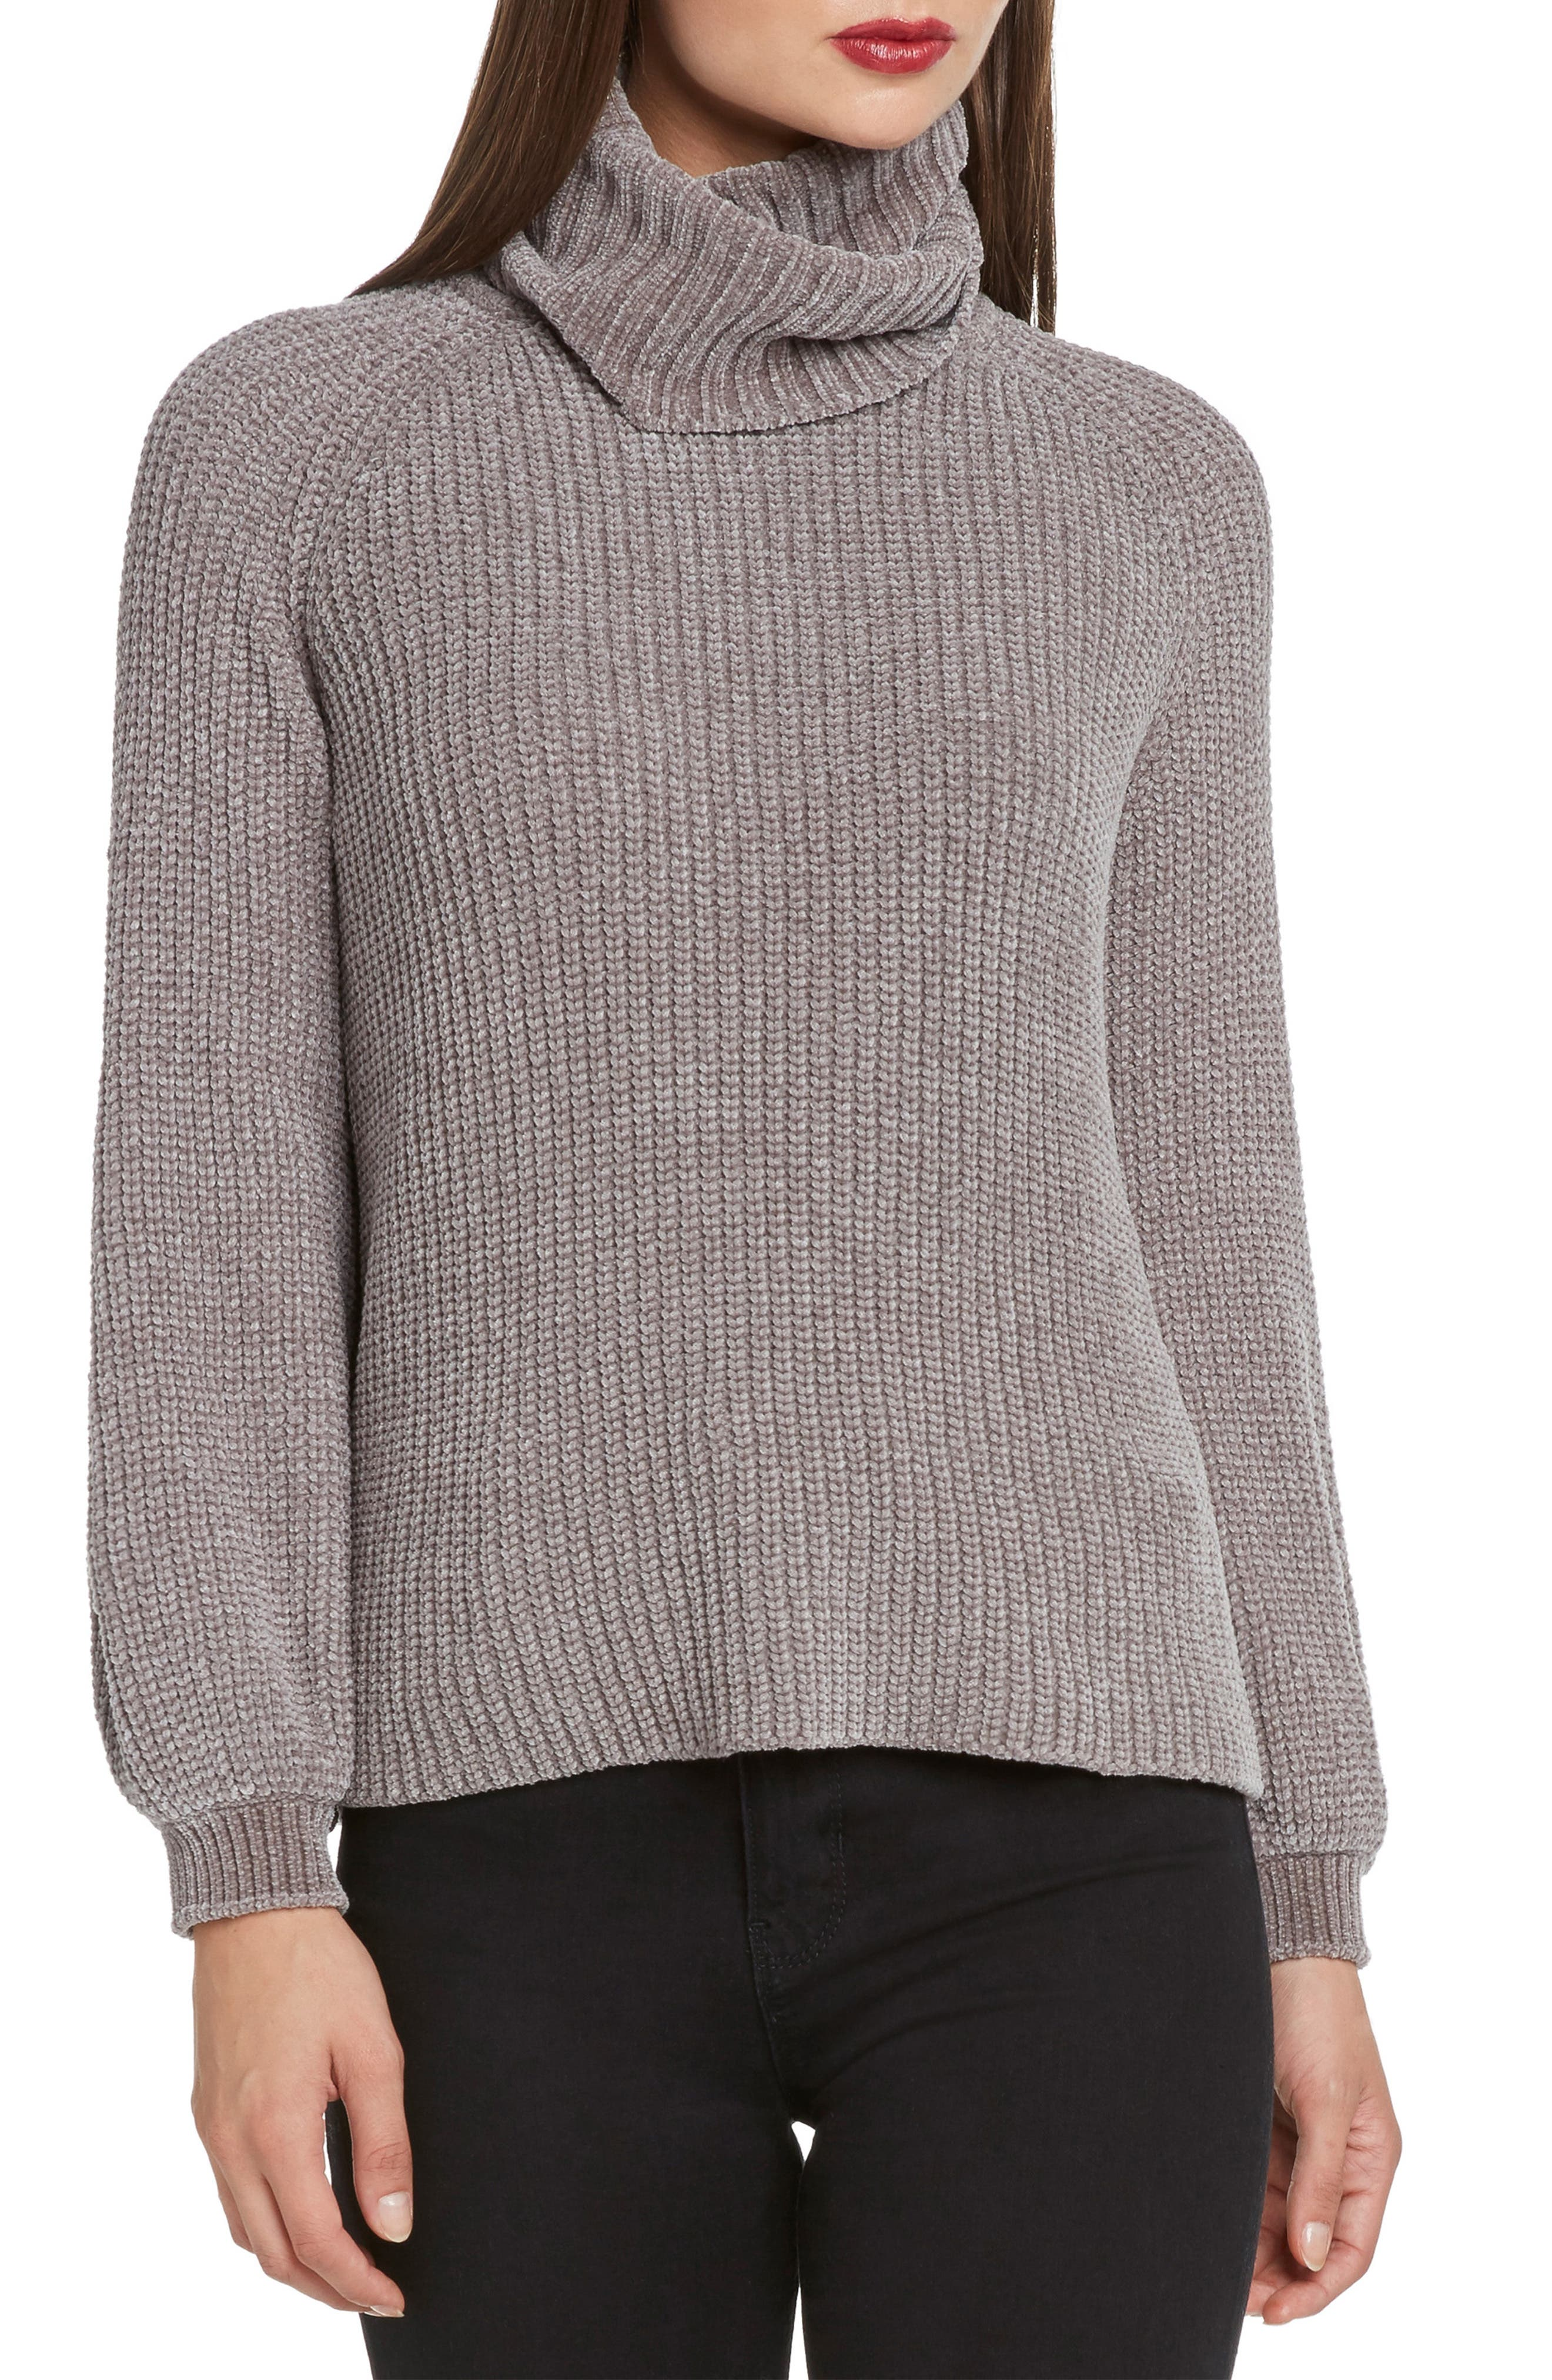 Bloused Sleeve Chenille Turtleneck Sweater,                             Main thumbnail 1, color,                             STONE